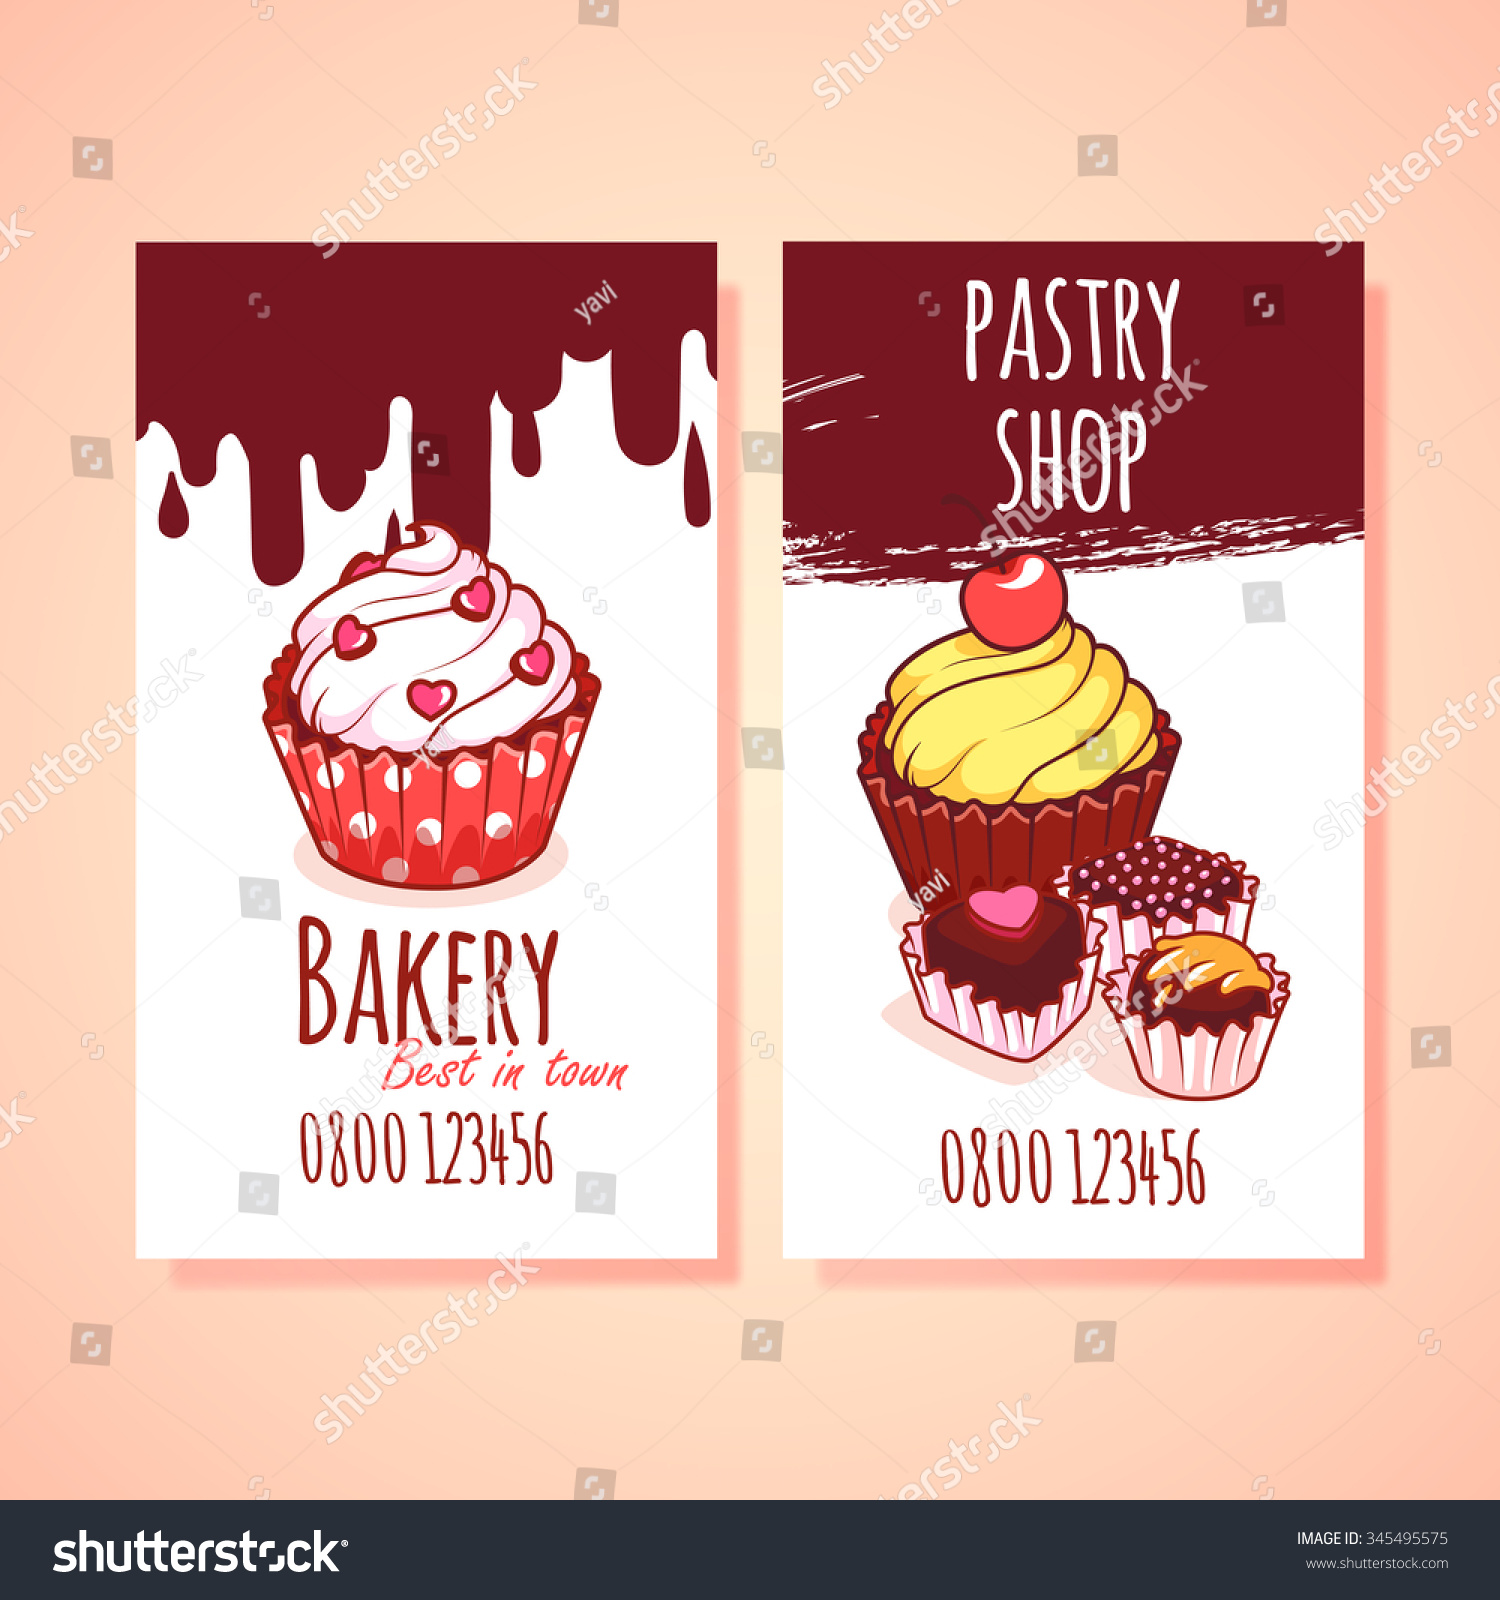 Two Vertical Orientation Business Card Pastry Stock Vector